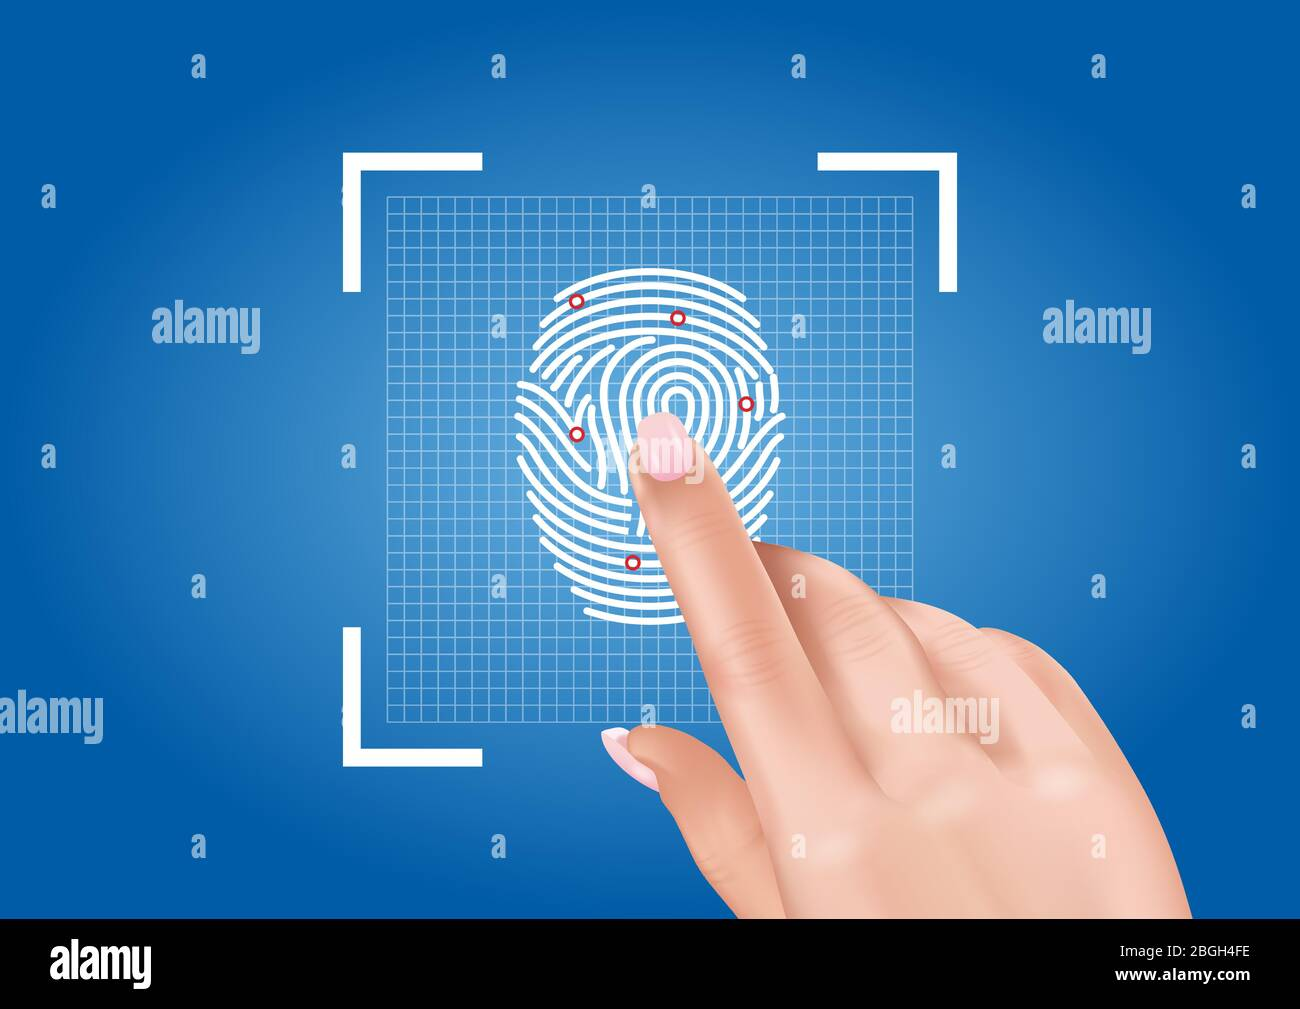 Vector graphics depicting the scanning of fingerprints ensuring access to security thanks to biometric identification. Stock Vector